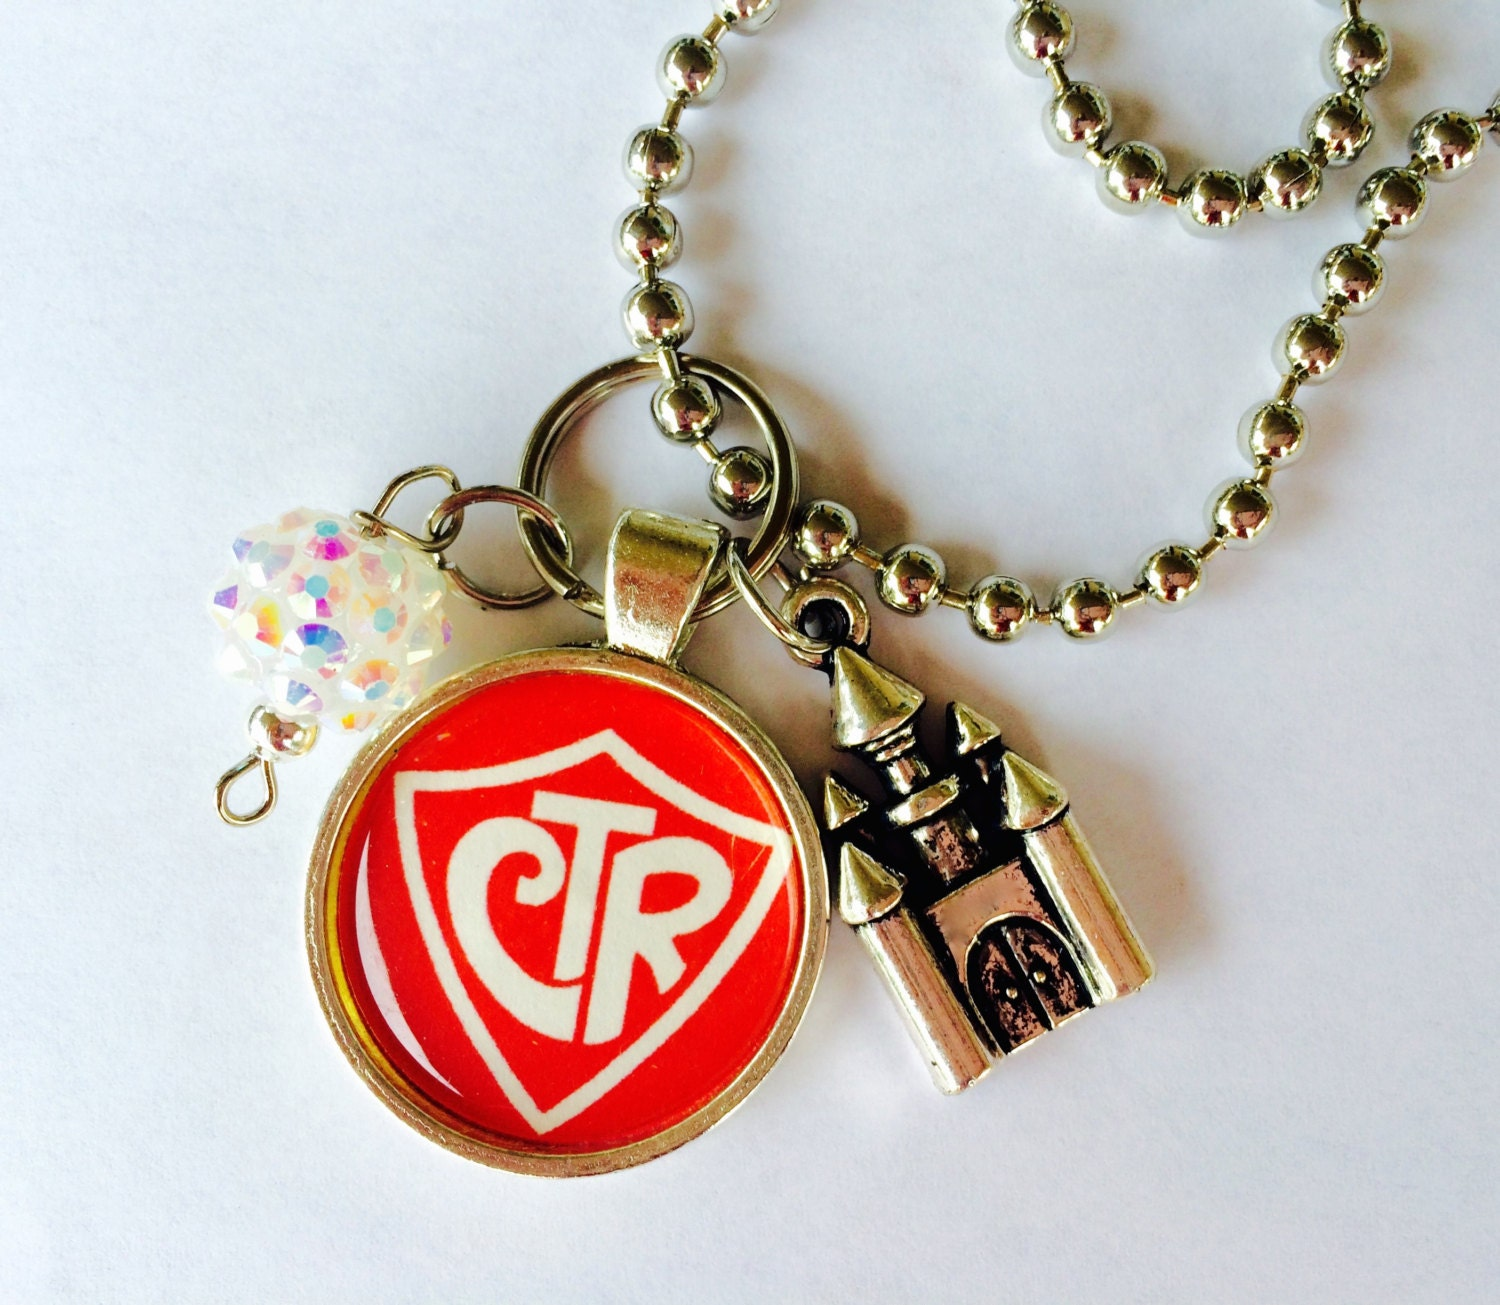 ctr necklaces choose the right primary gifts for